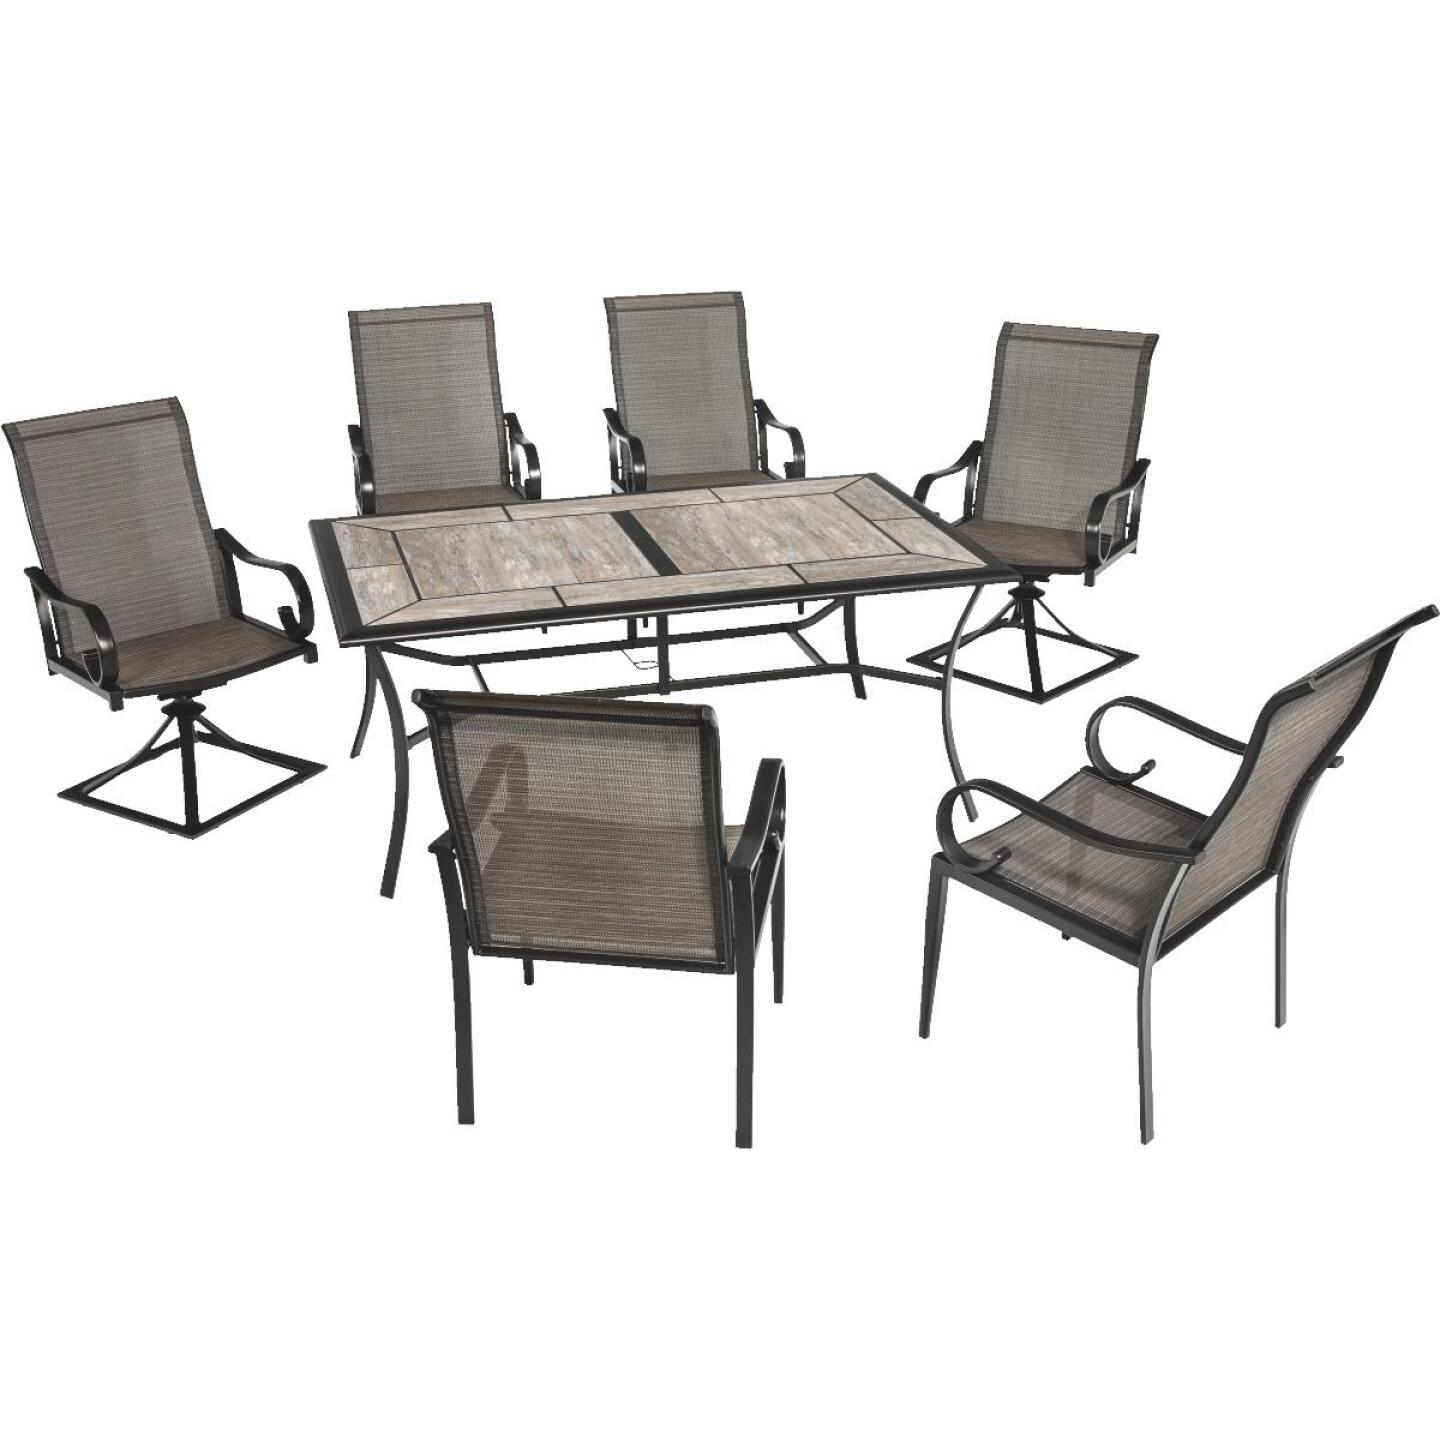 Outdoor Expressions Berkshire 7-Piece Dining Set Image 59